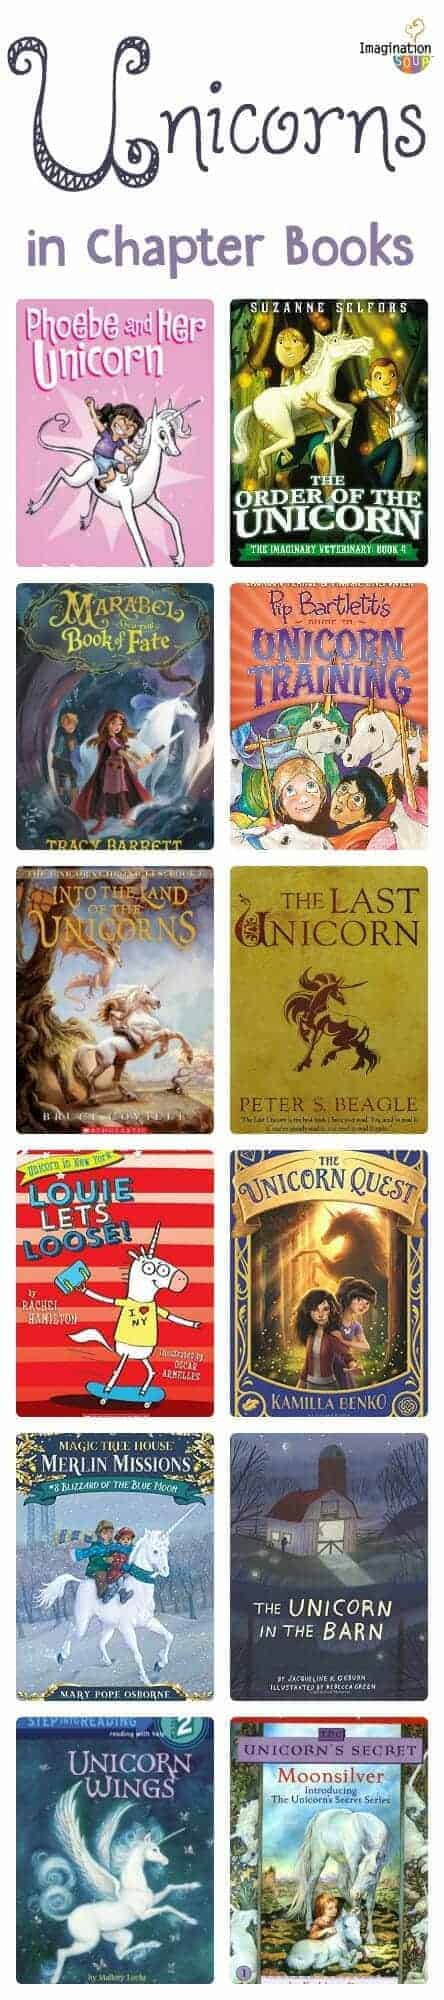 chapter books about unicorns